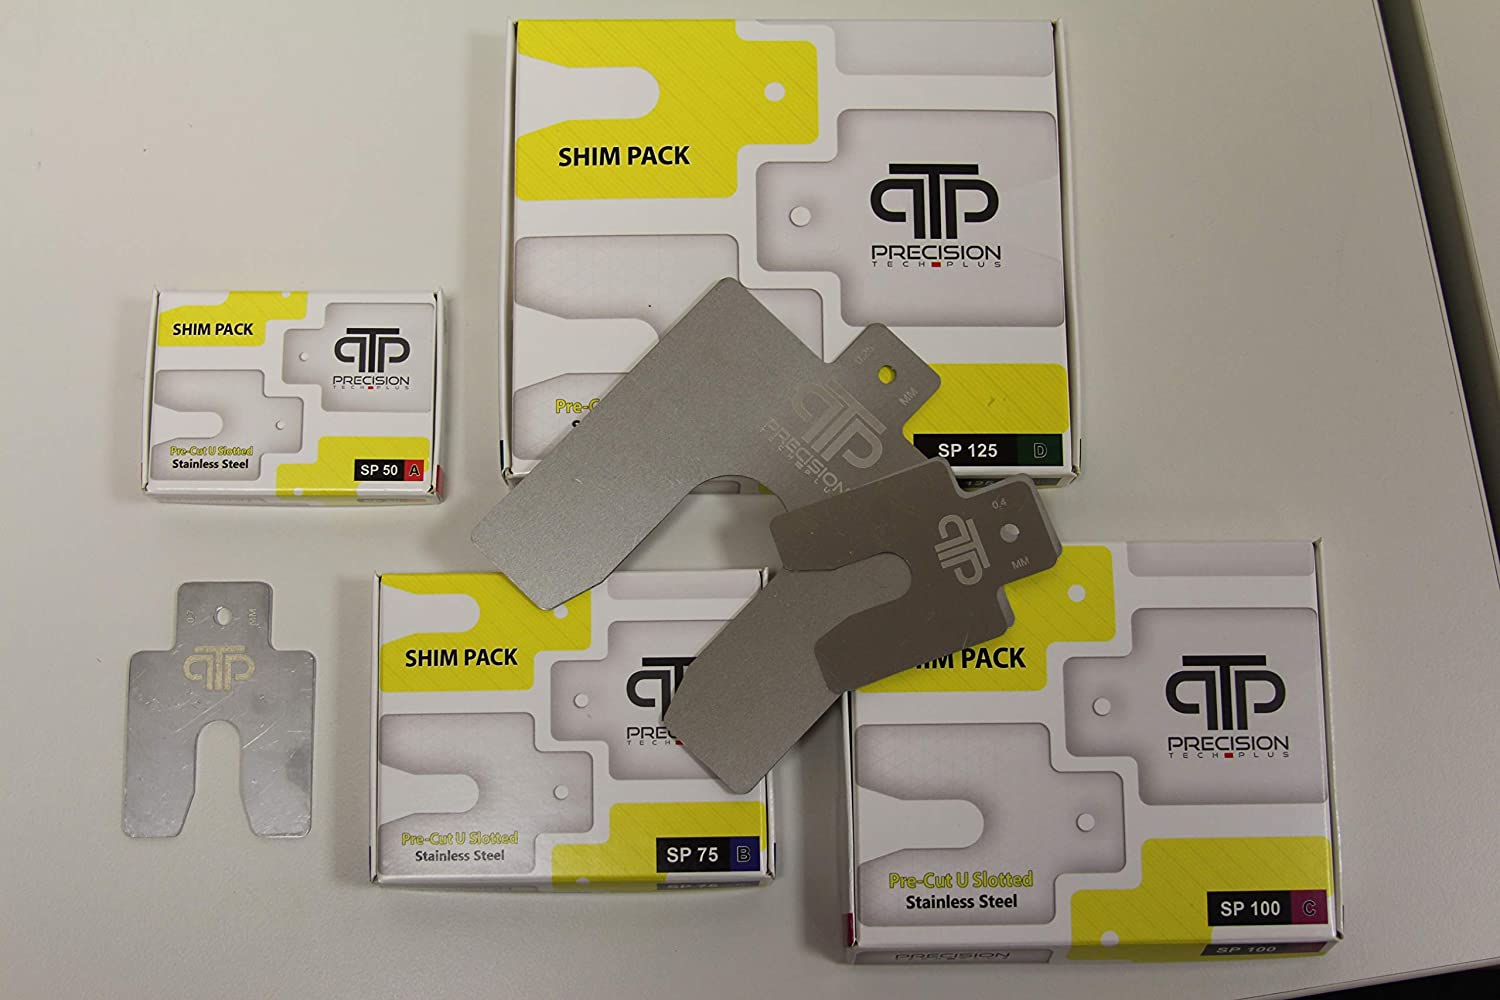 Stainless Steel Pre cut Shim Pack Size B 75 x 75 mm 0.05 mm shim thickness, 20 pieces per pack